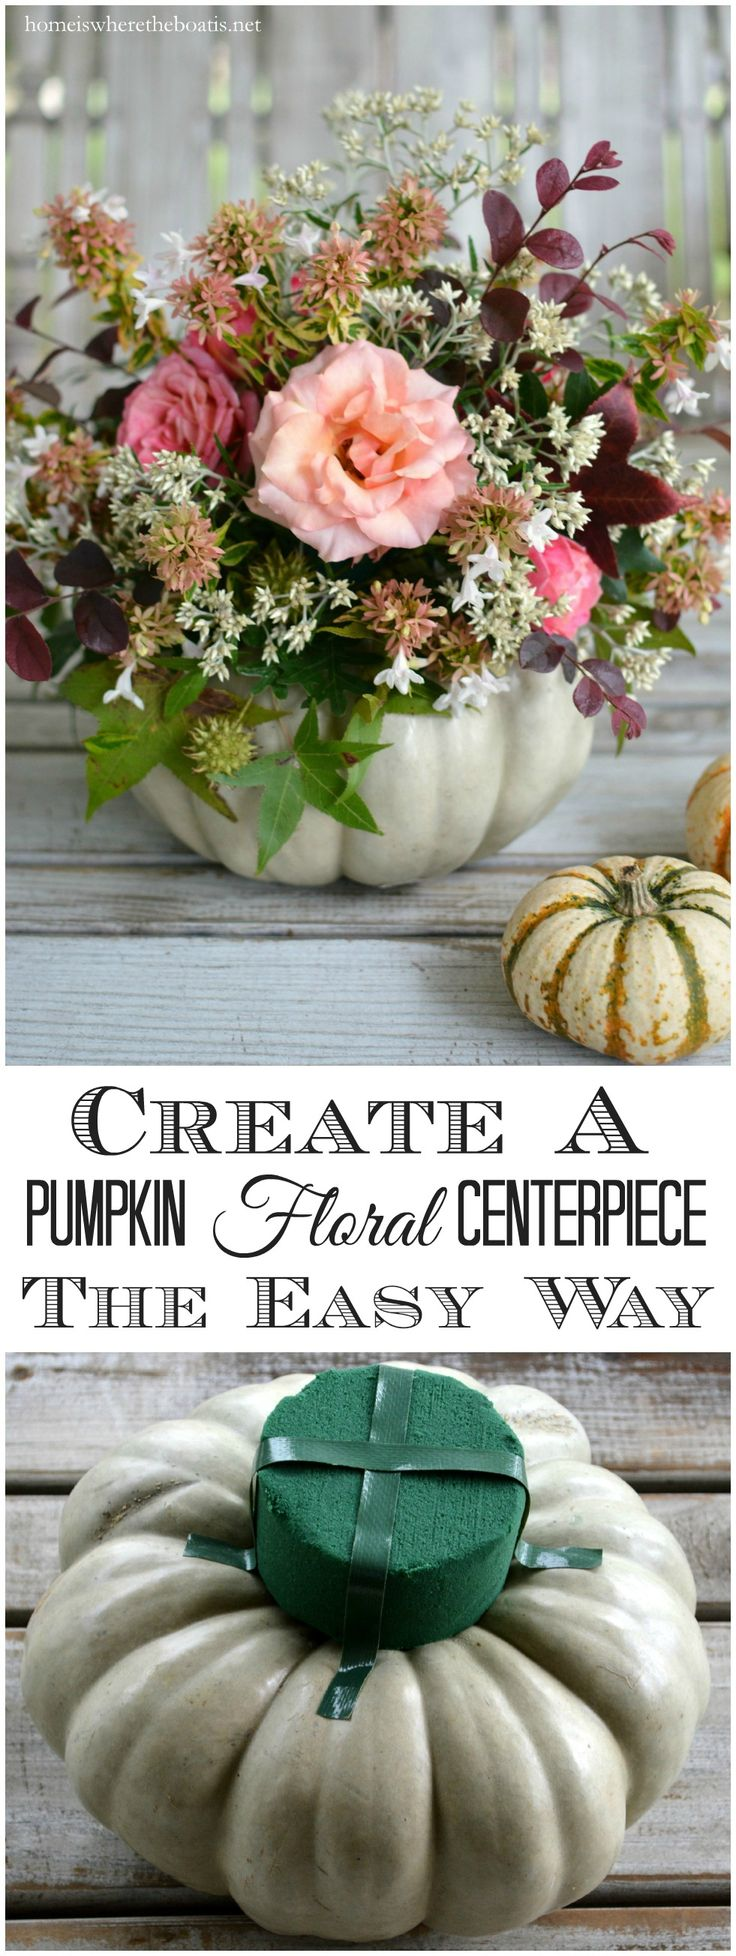 Create a Pumpkin Floral Centerpiece the easy way, no carving required! | homeiswheretheboatis.net #pumpkinvase